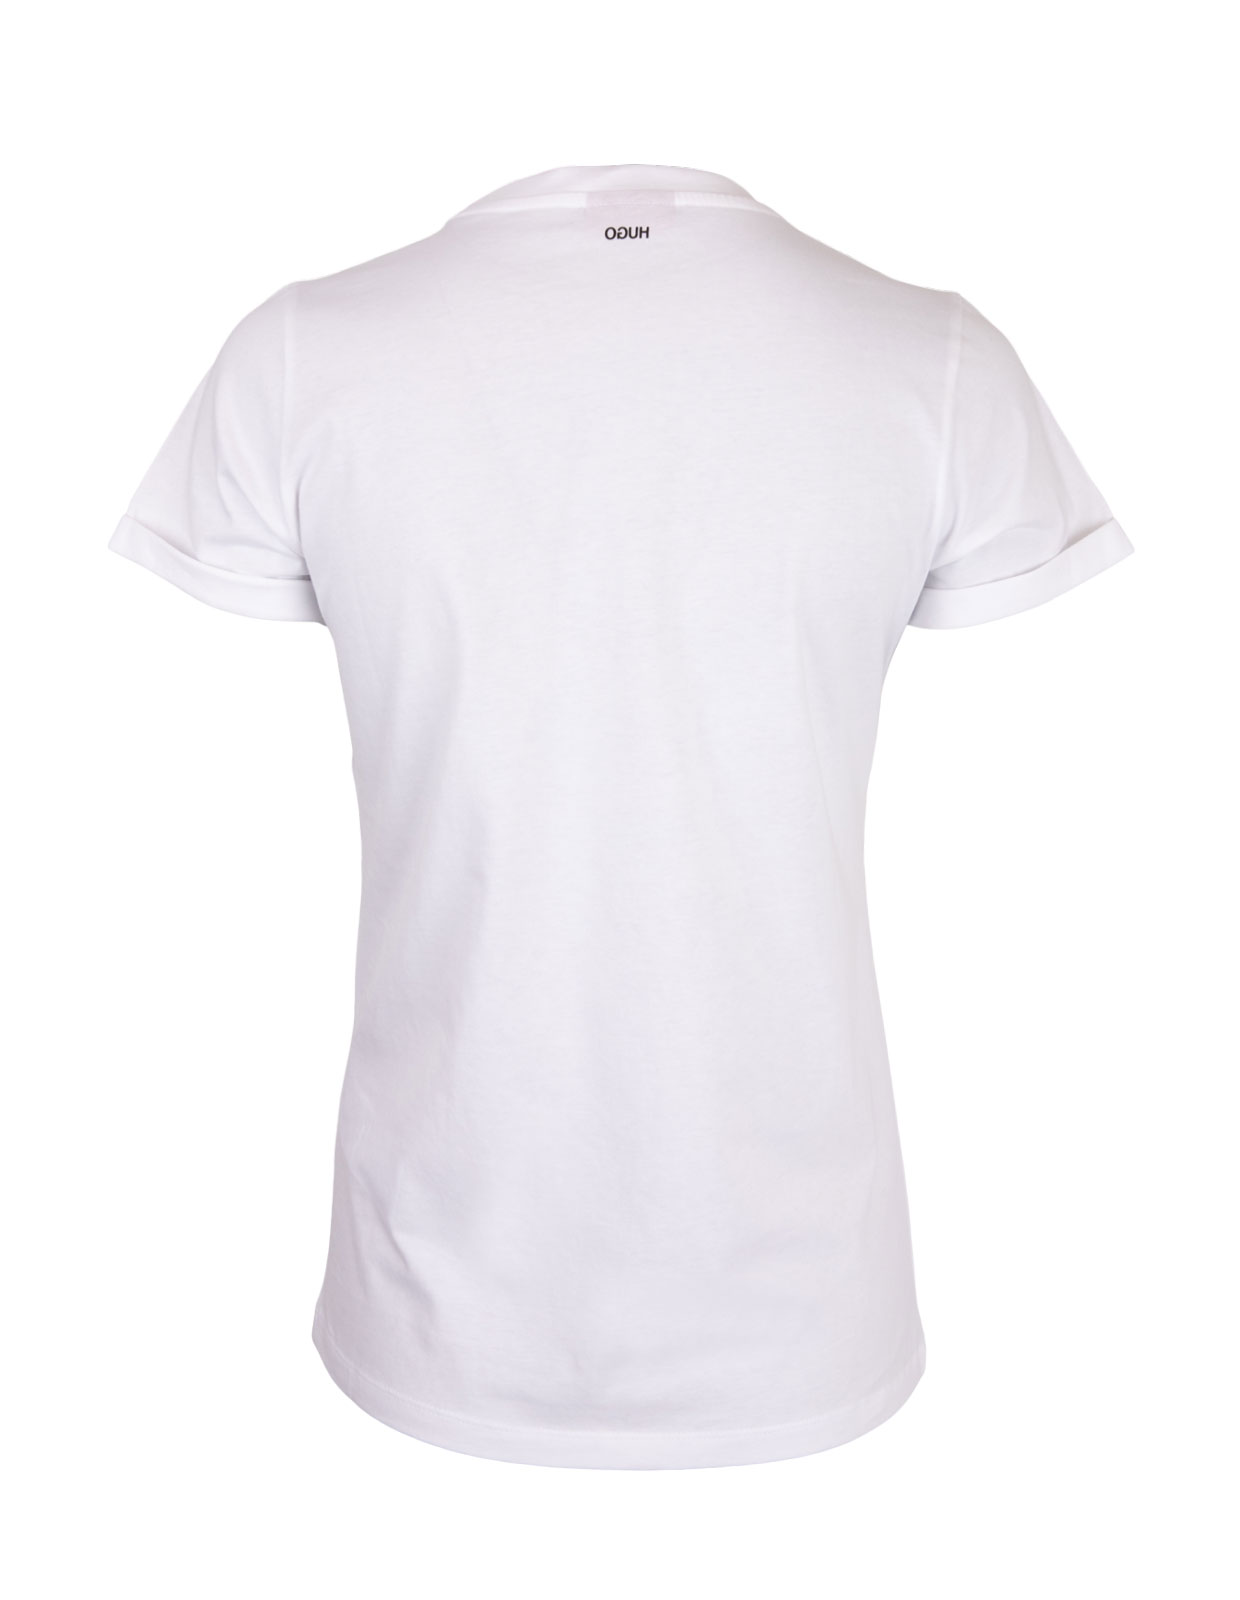 The Plain Tee T-shirt White